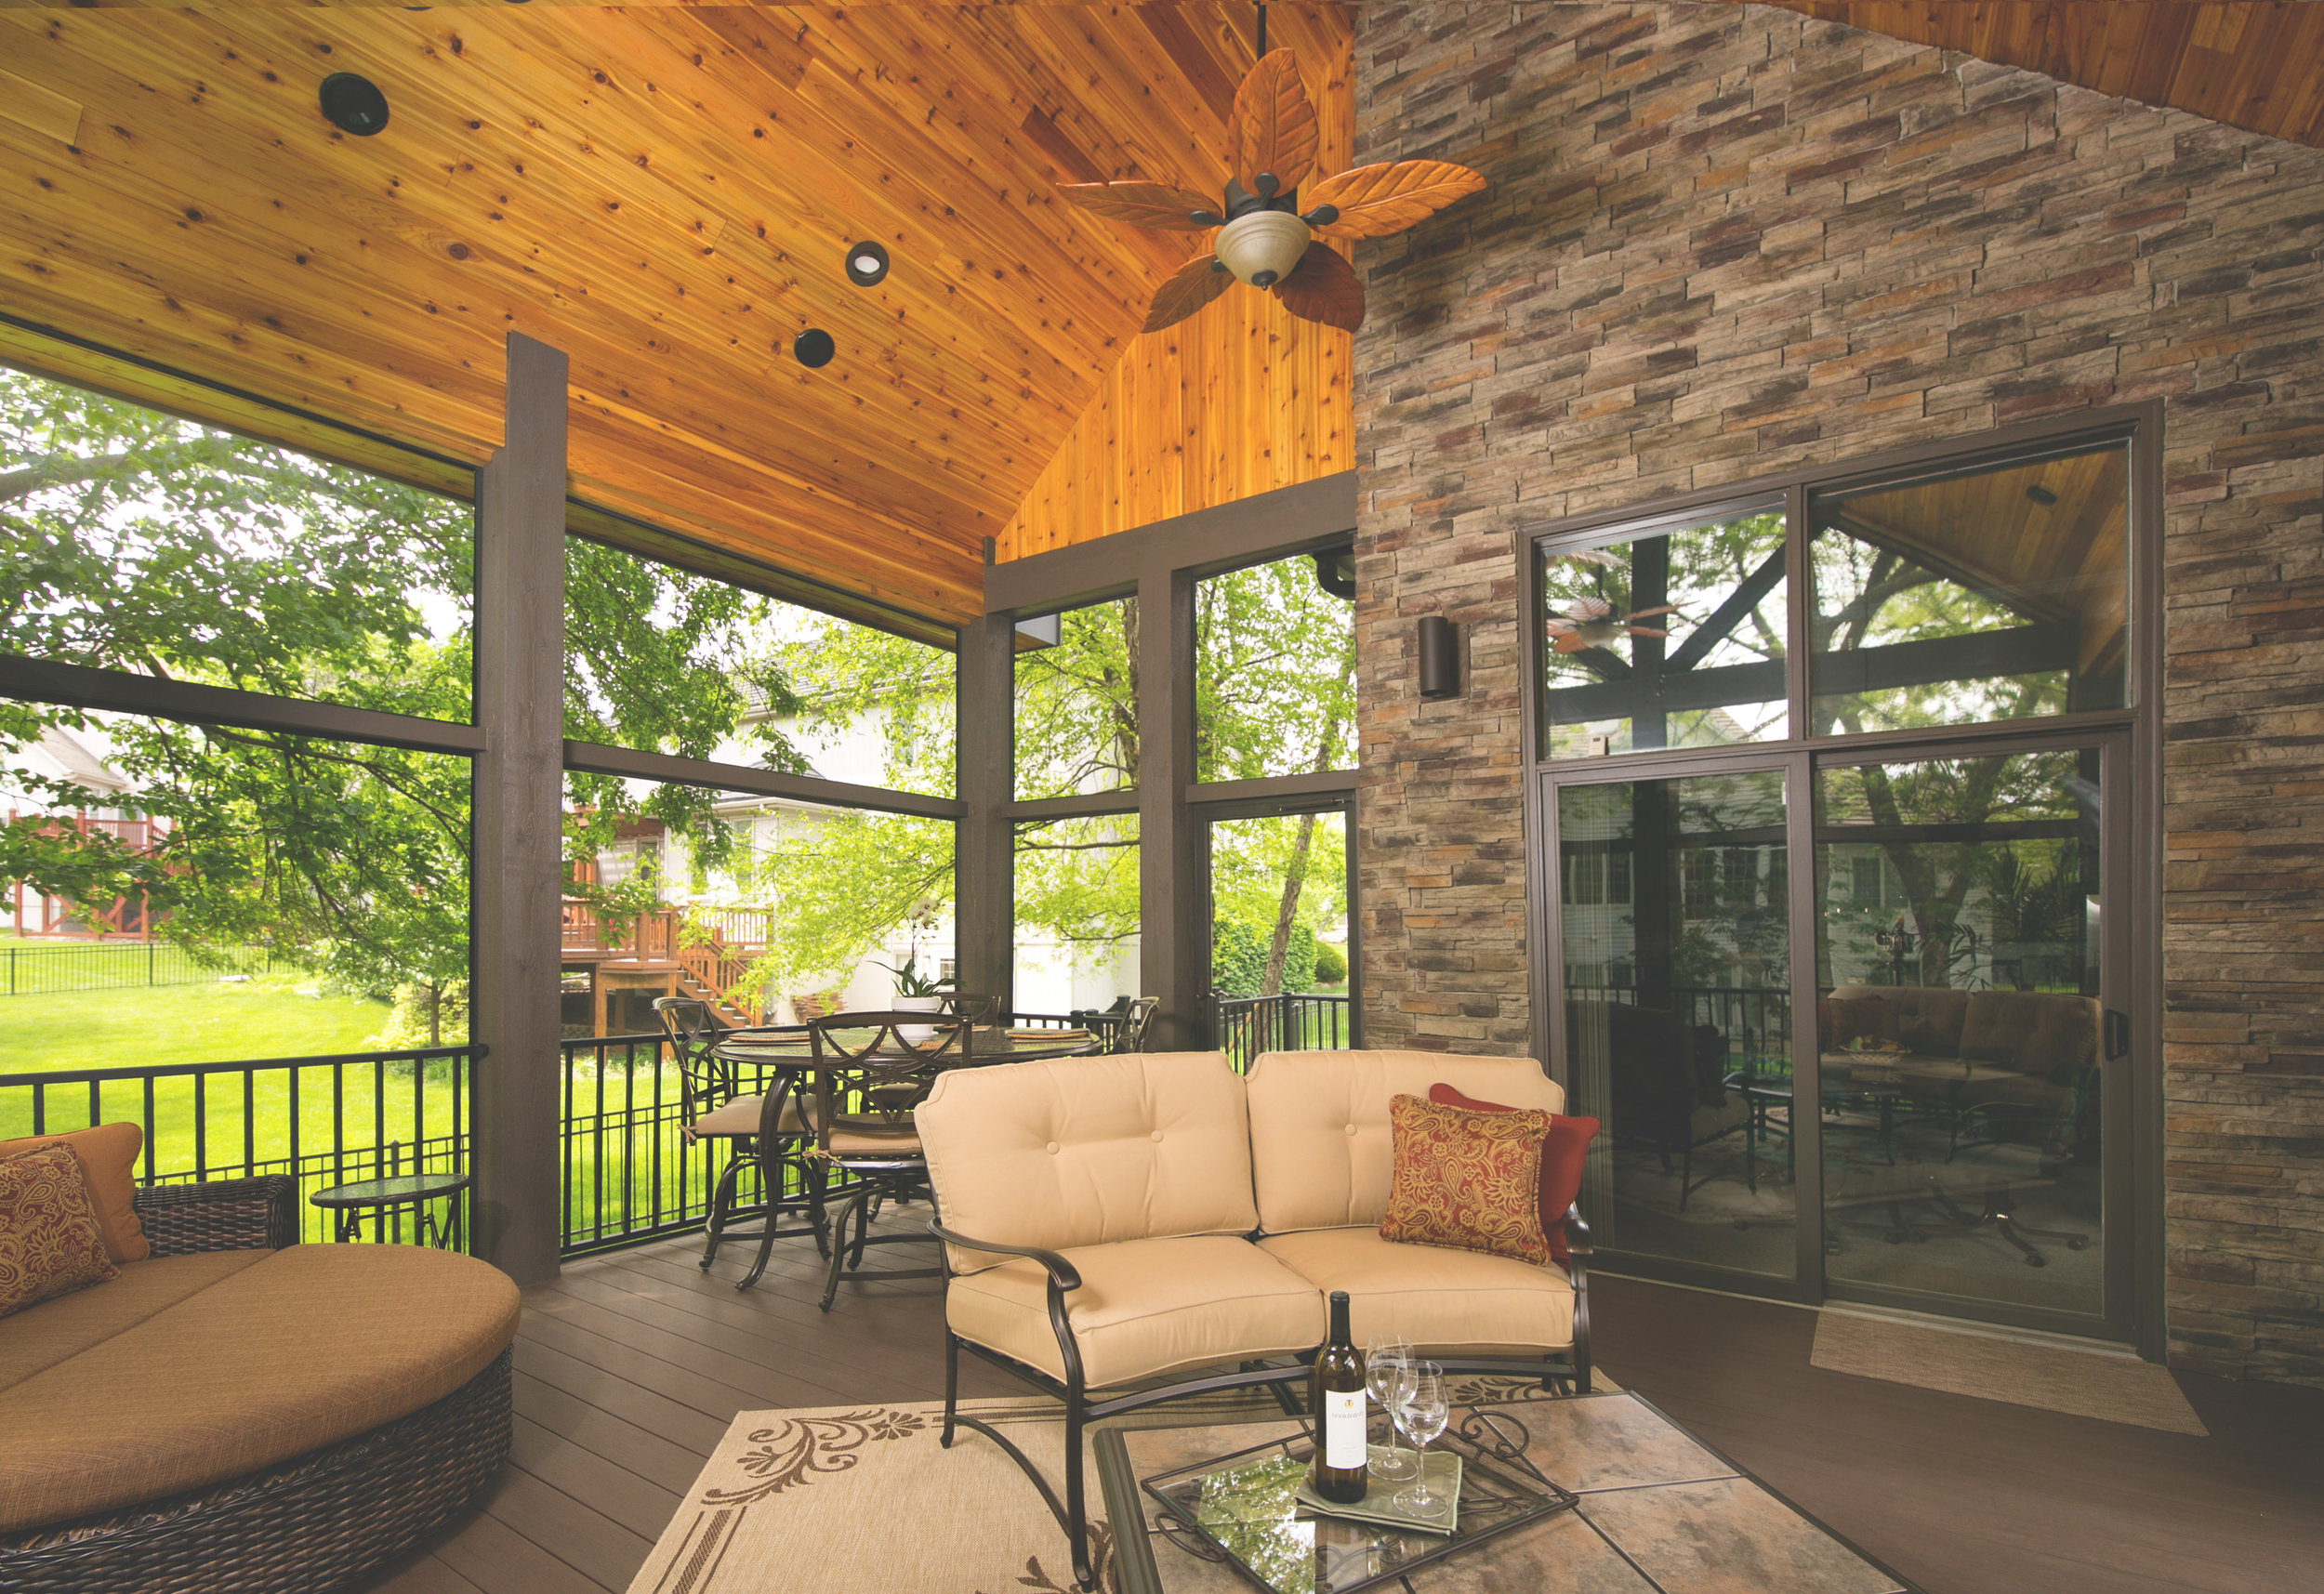 This custom porch features some of the best building materials including, AZEK decking, Screeneze, and Westbury Railing